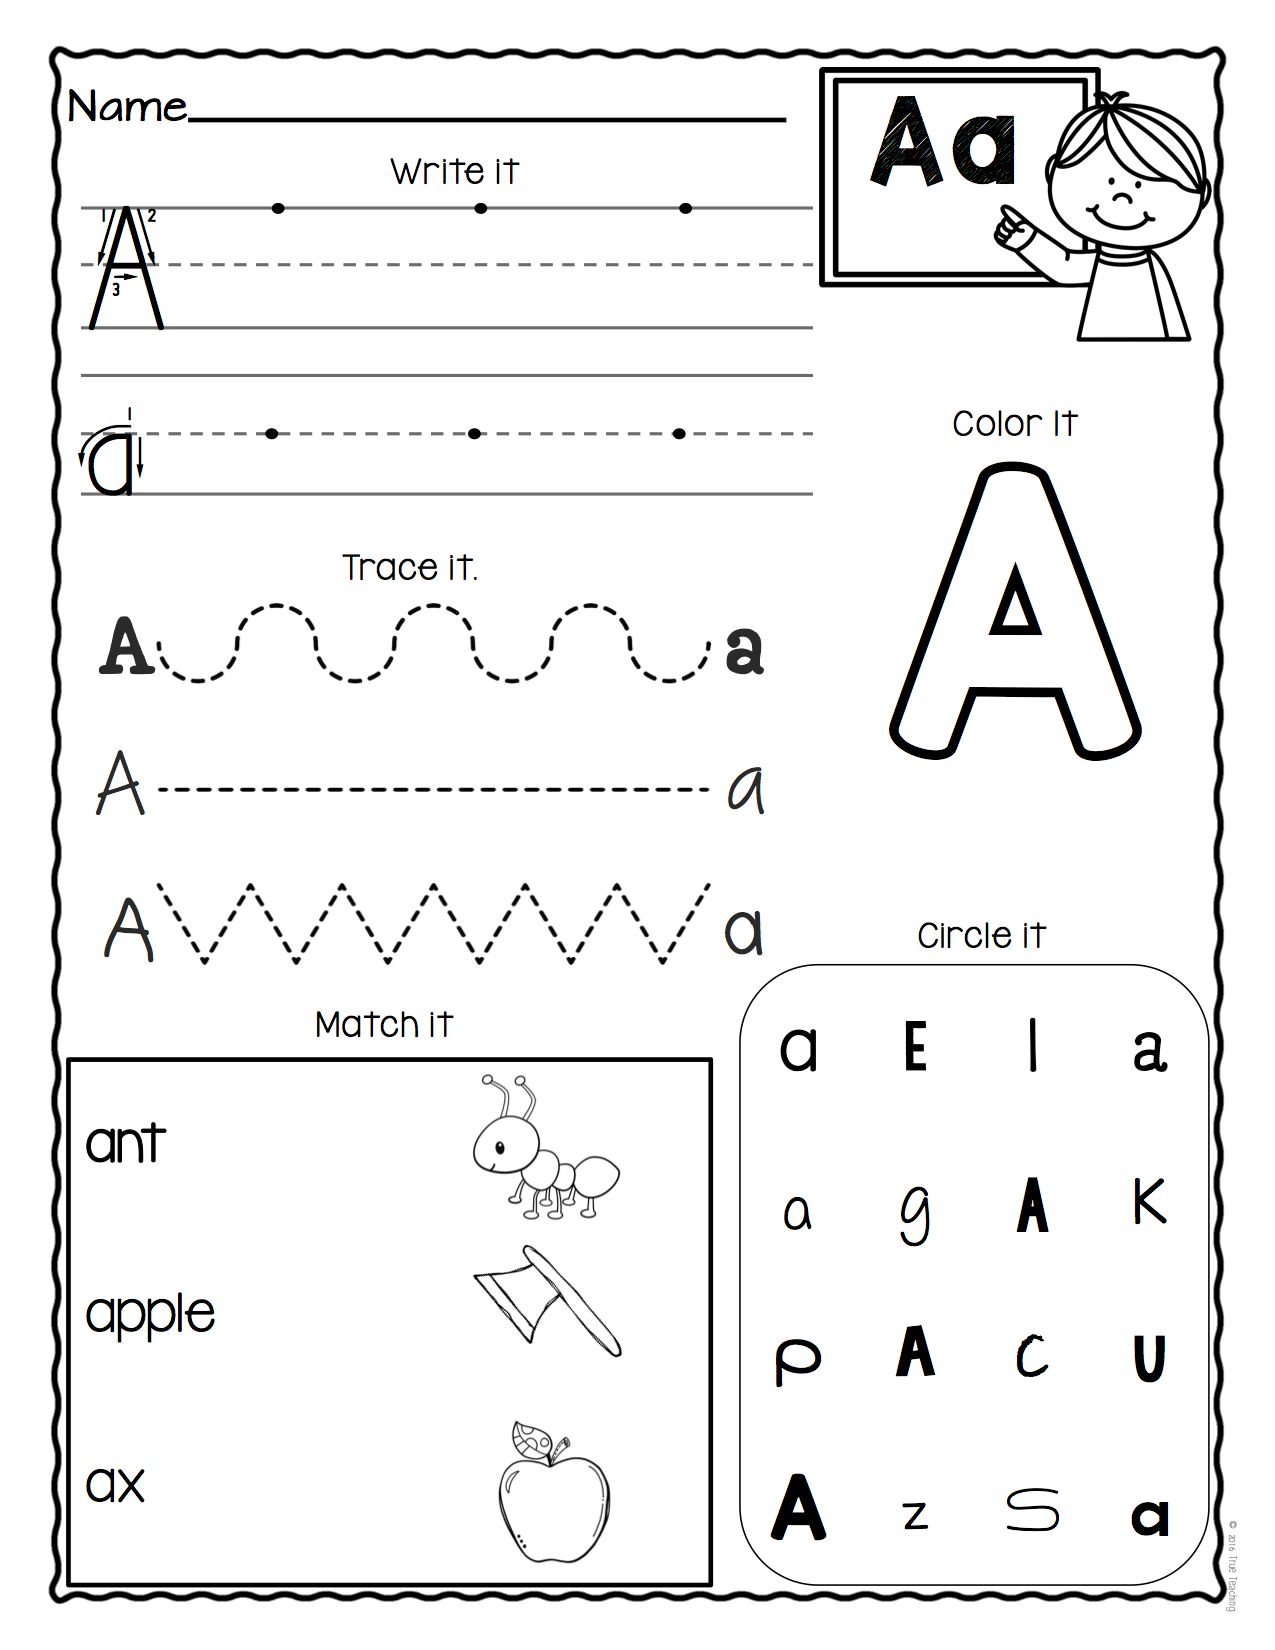 Worksheet Letter Identification Worksheets Worksheet Fun Worksheet Study Site